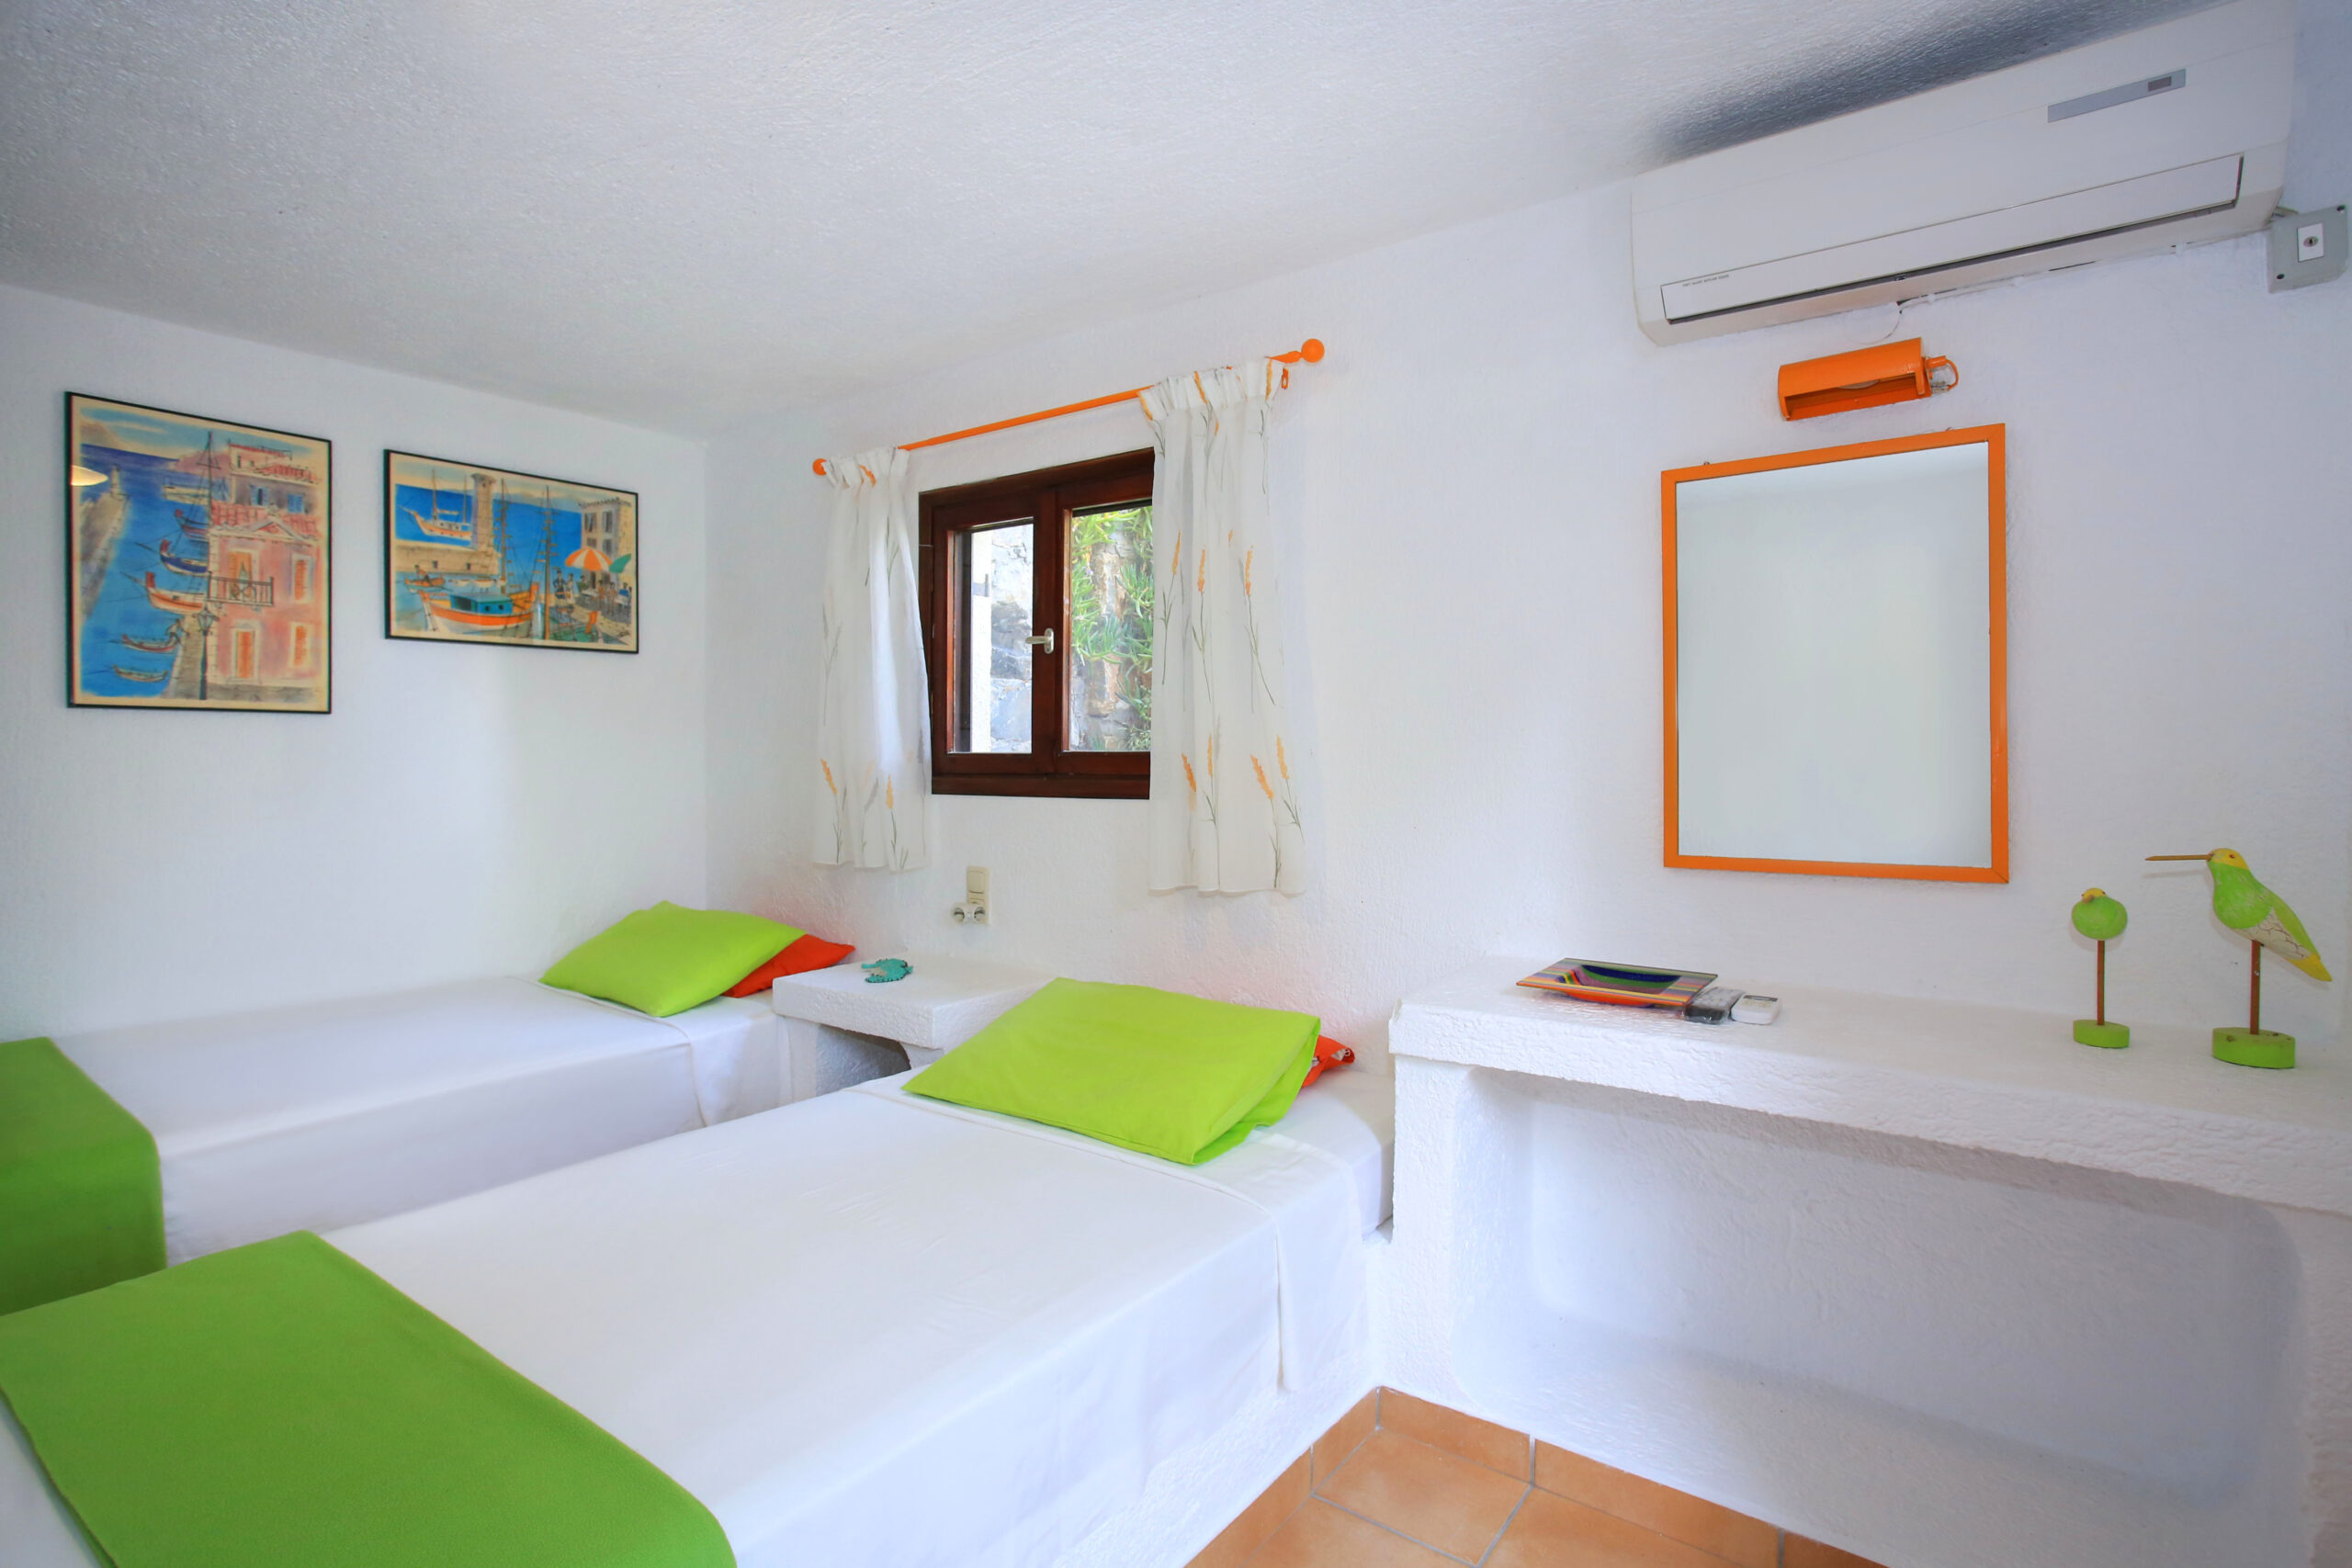 Economy Apartment Ground Floor - Villa Galini Apartments Agios Nikolaos, Crete, Greece 2